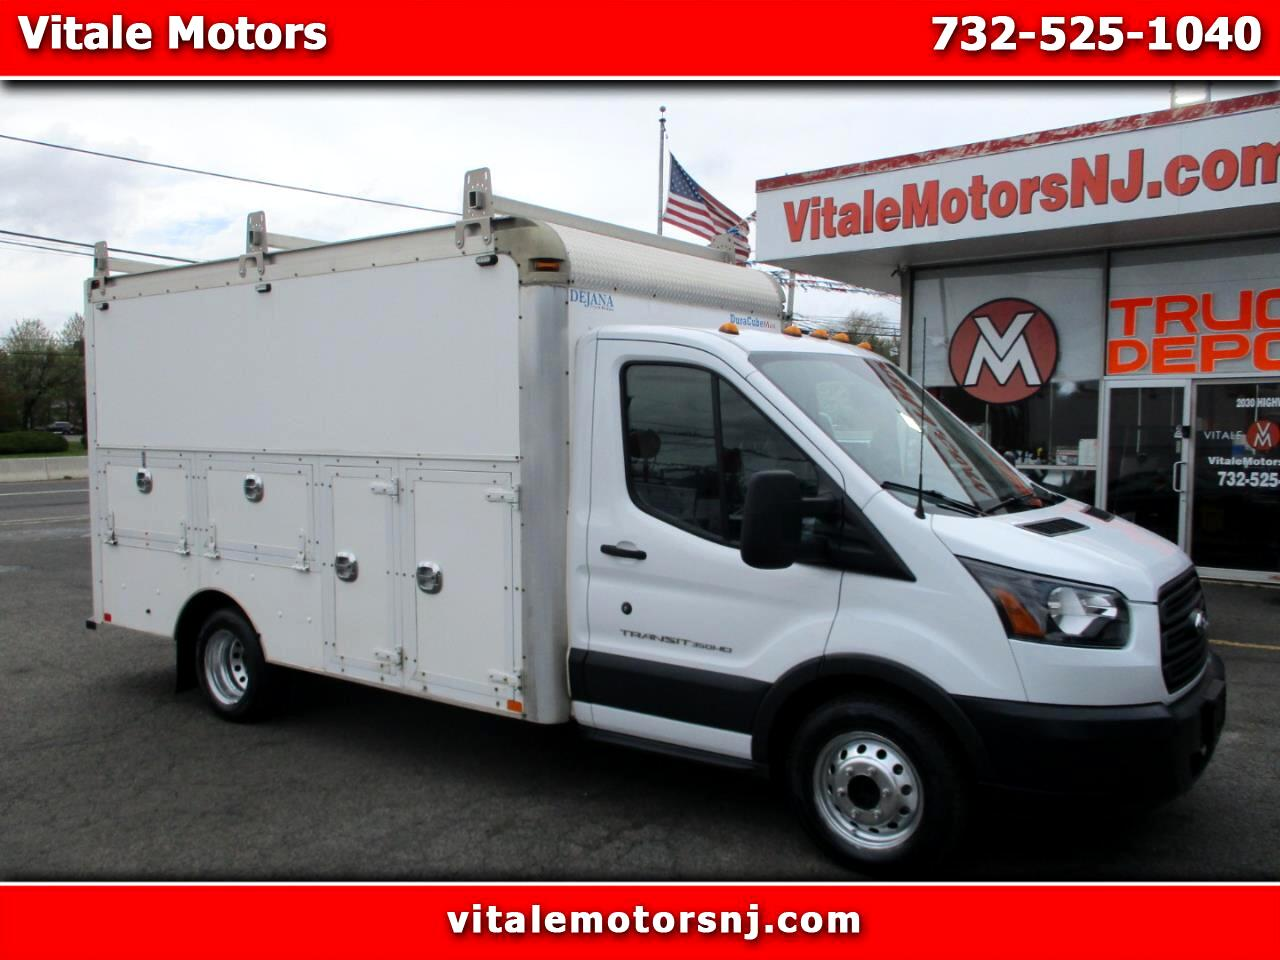 2015 Ford Transit T-350 12 FOOT ENCLOSED UTILITY BODY DRW